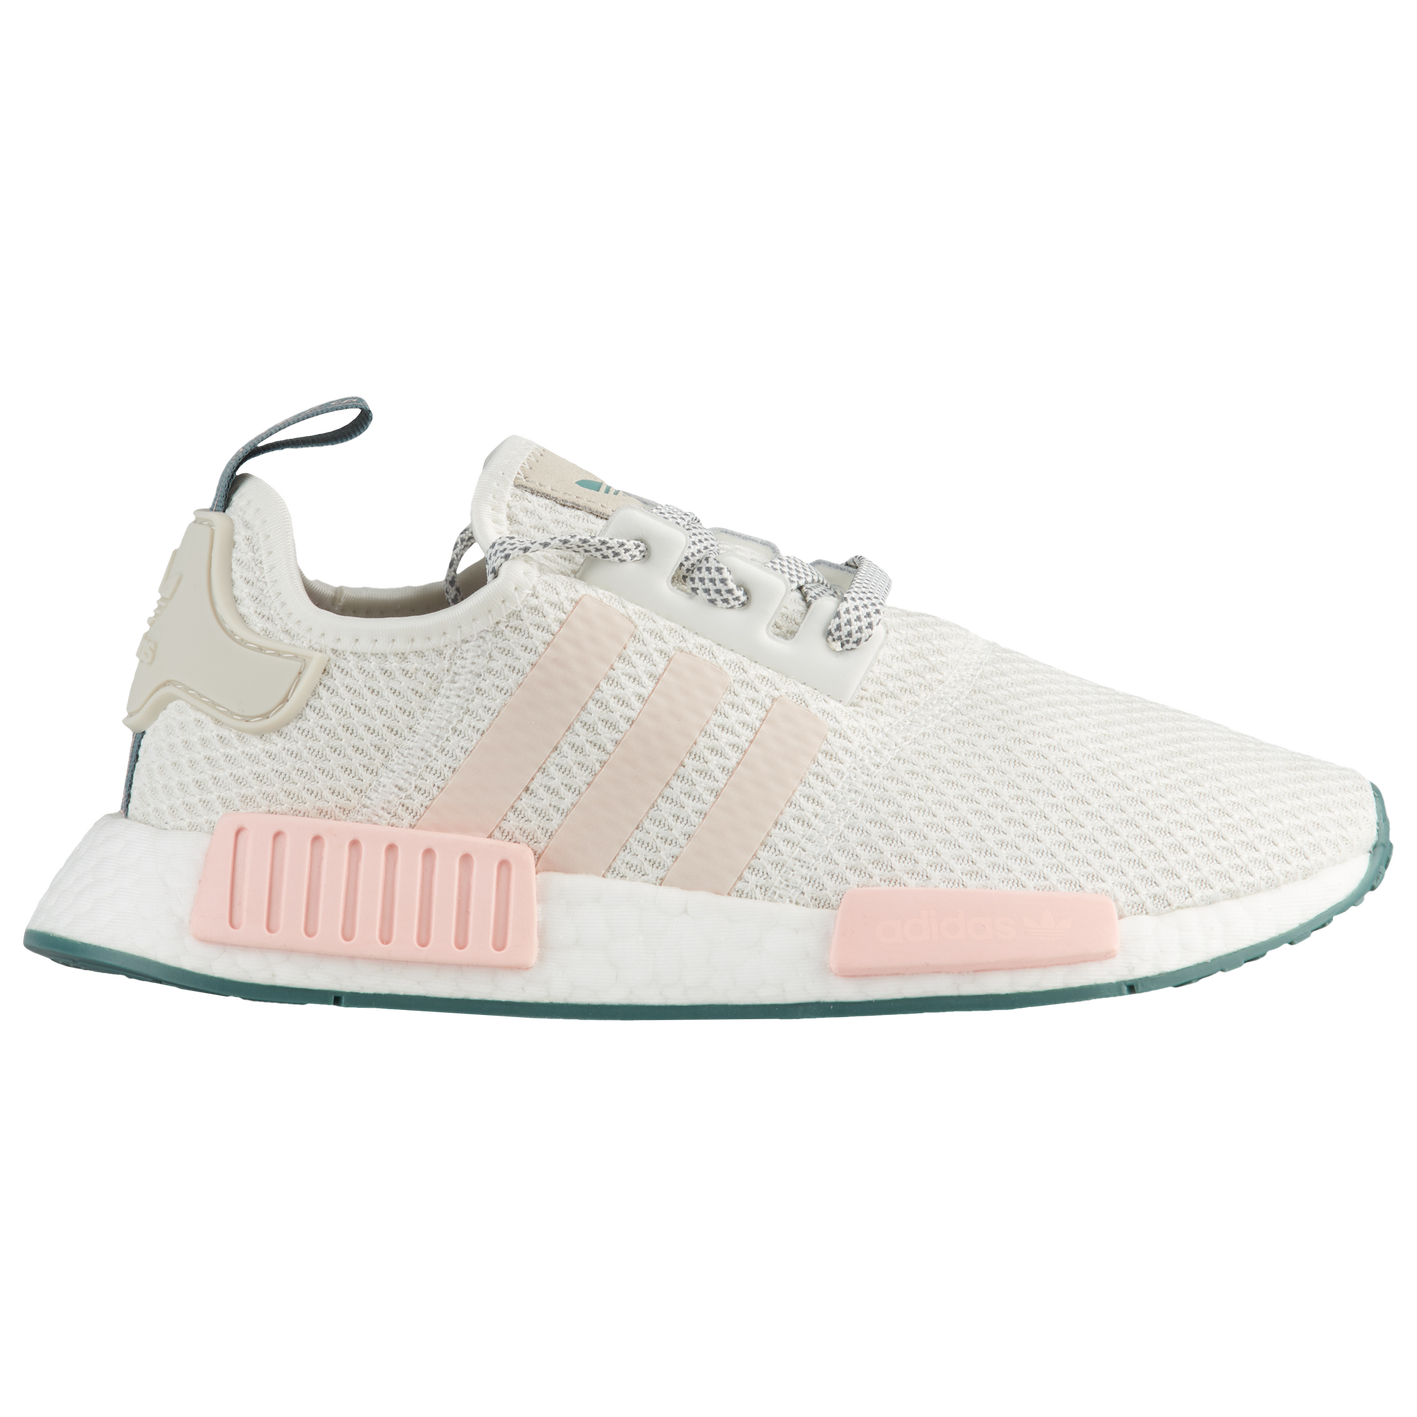 5291beaf3ac5 adidas Originals NMD R1 - Women s - Casual - Shoes - Cloud White ...